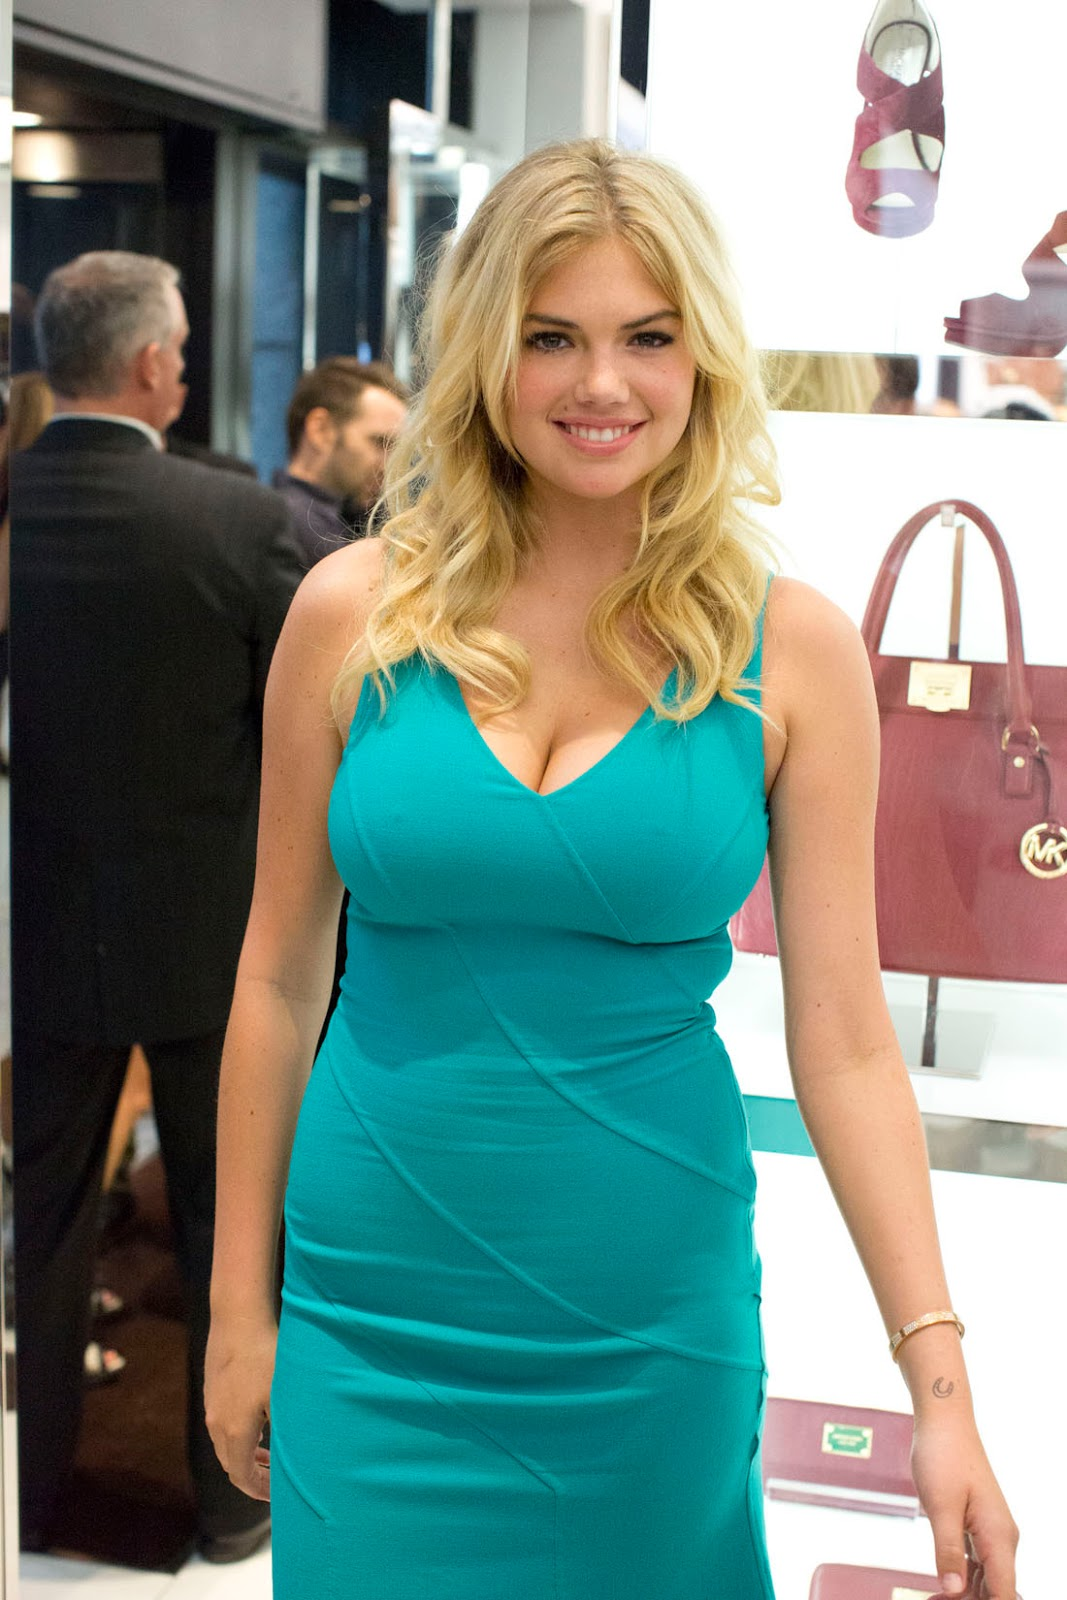 Kate upton blue dress 2013